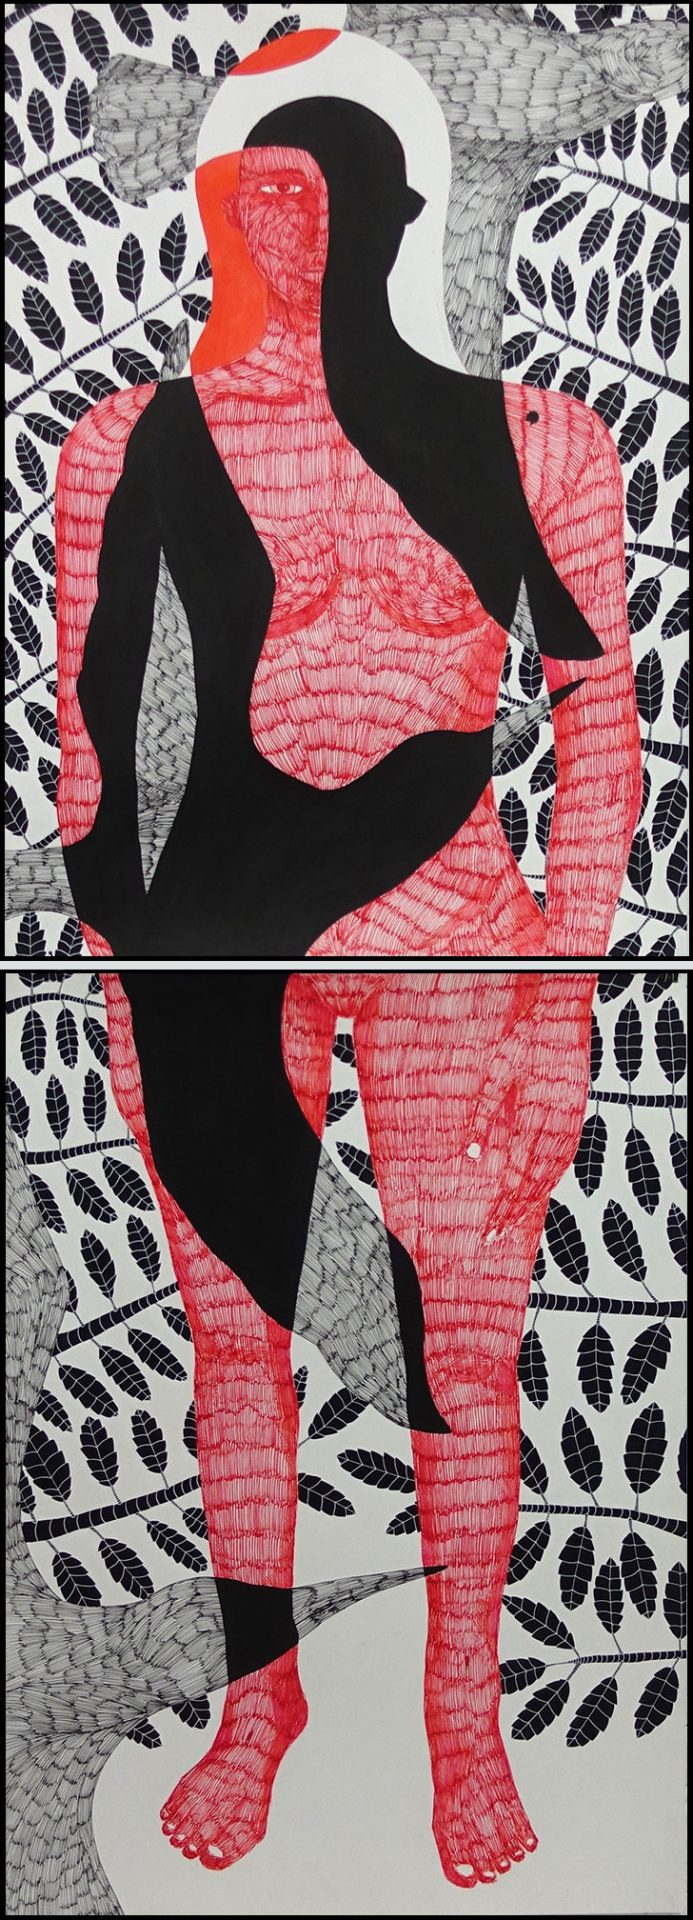 Klone, Standing Ground (before Moving On), 2014, Ink on paper, 200x70 cm